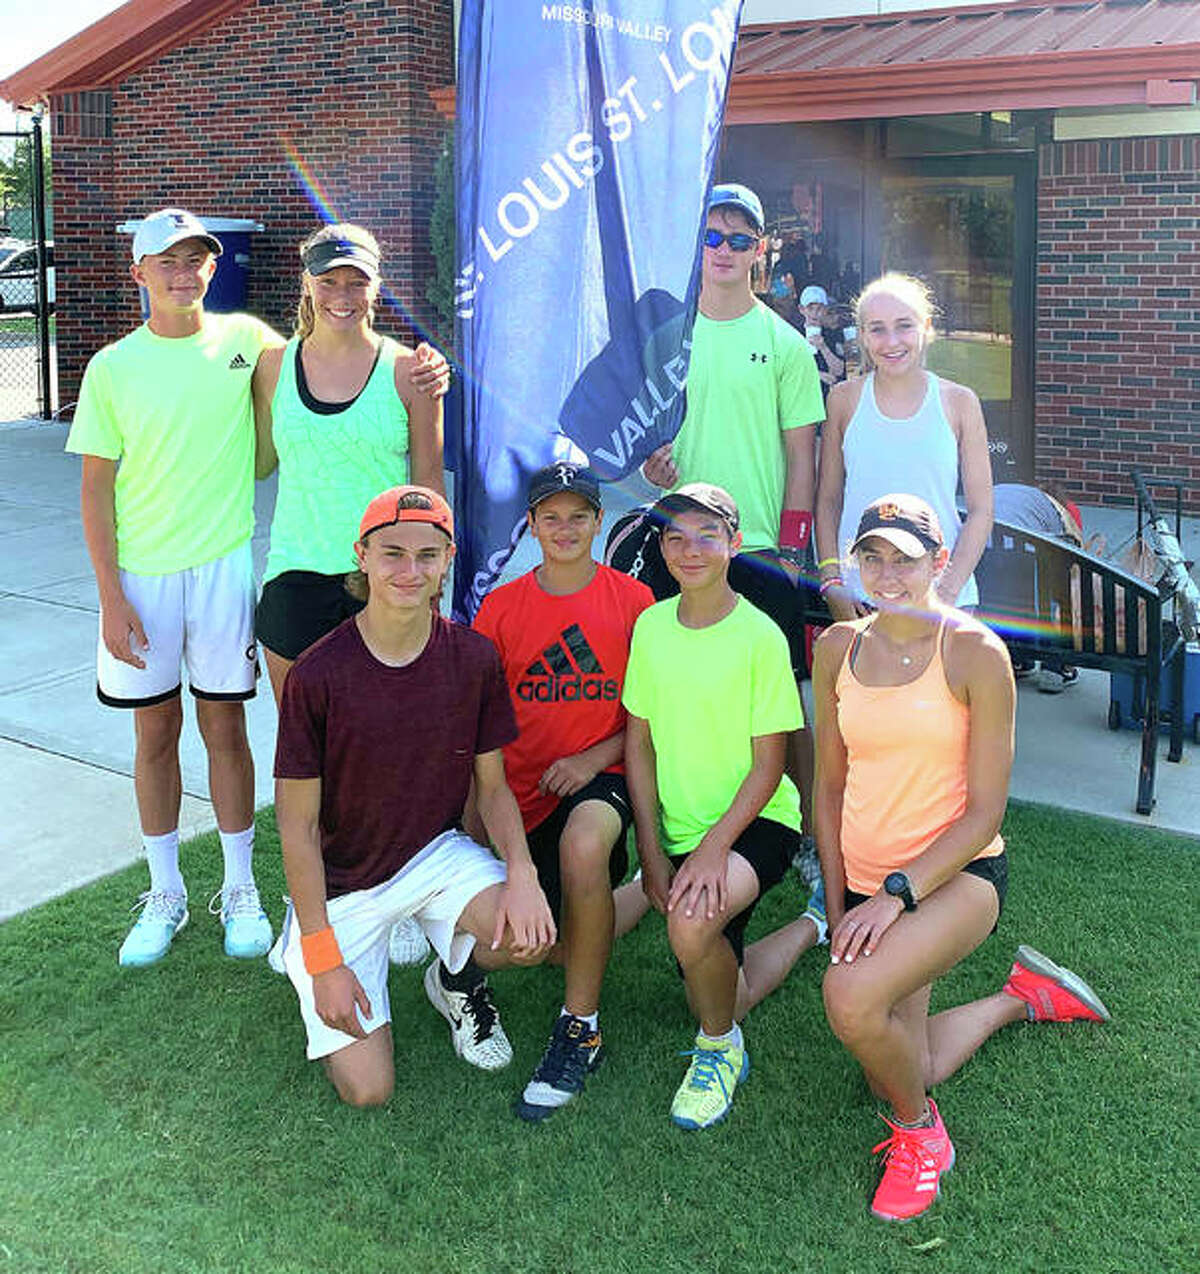 The 18 and under Gold team from Edwardsville Tennis Academy won the St. Louis District in Junior Team Tennis and finished seventh in the Missouri Valley Section Championships in Tulsa, Okla.